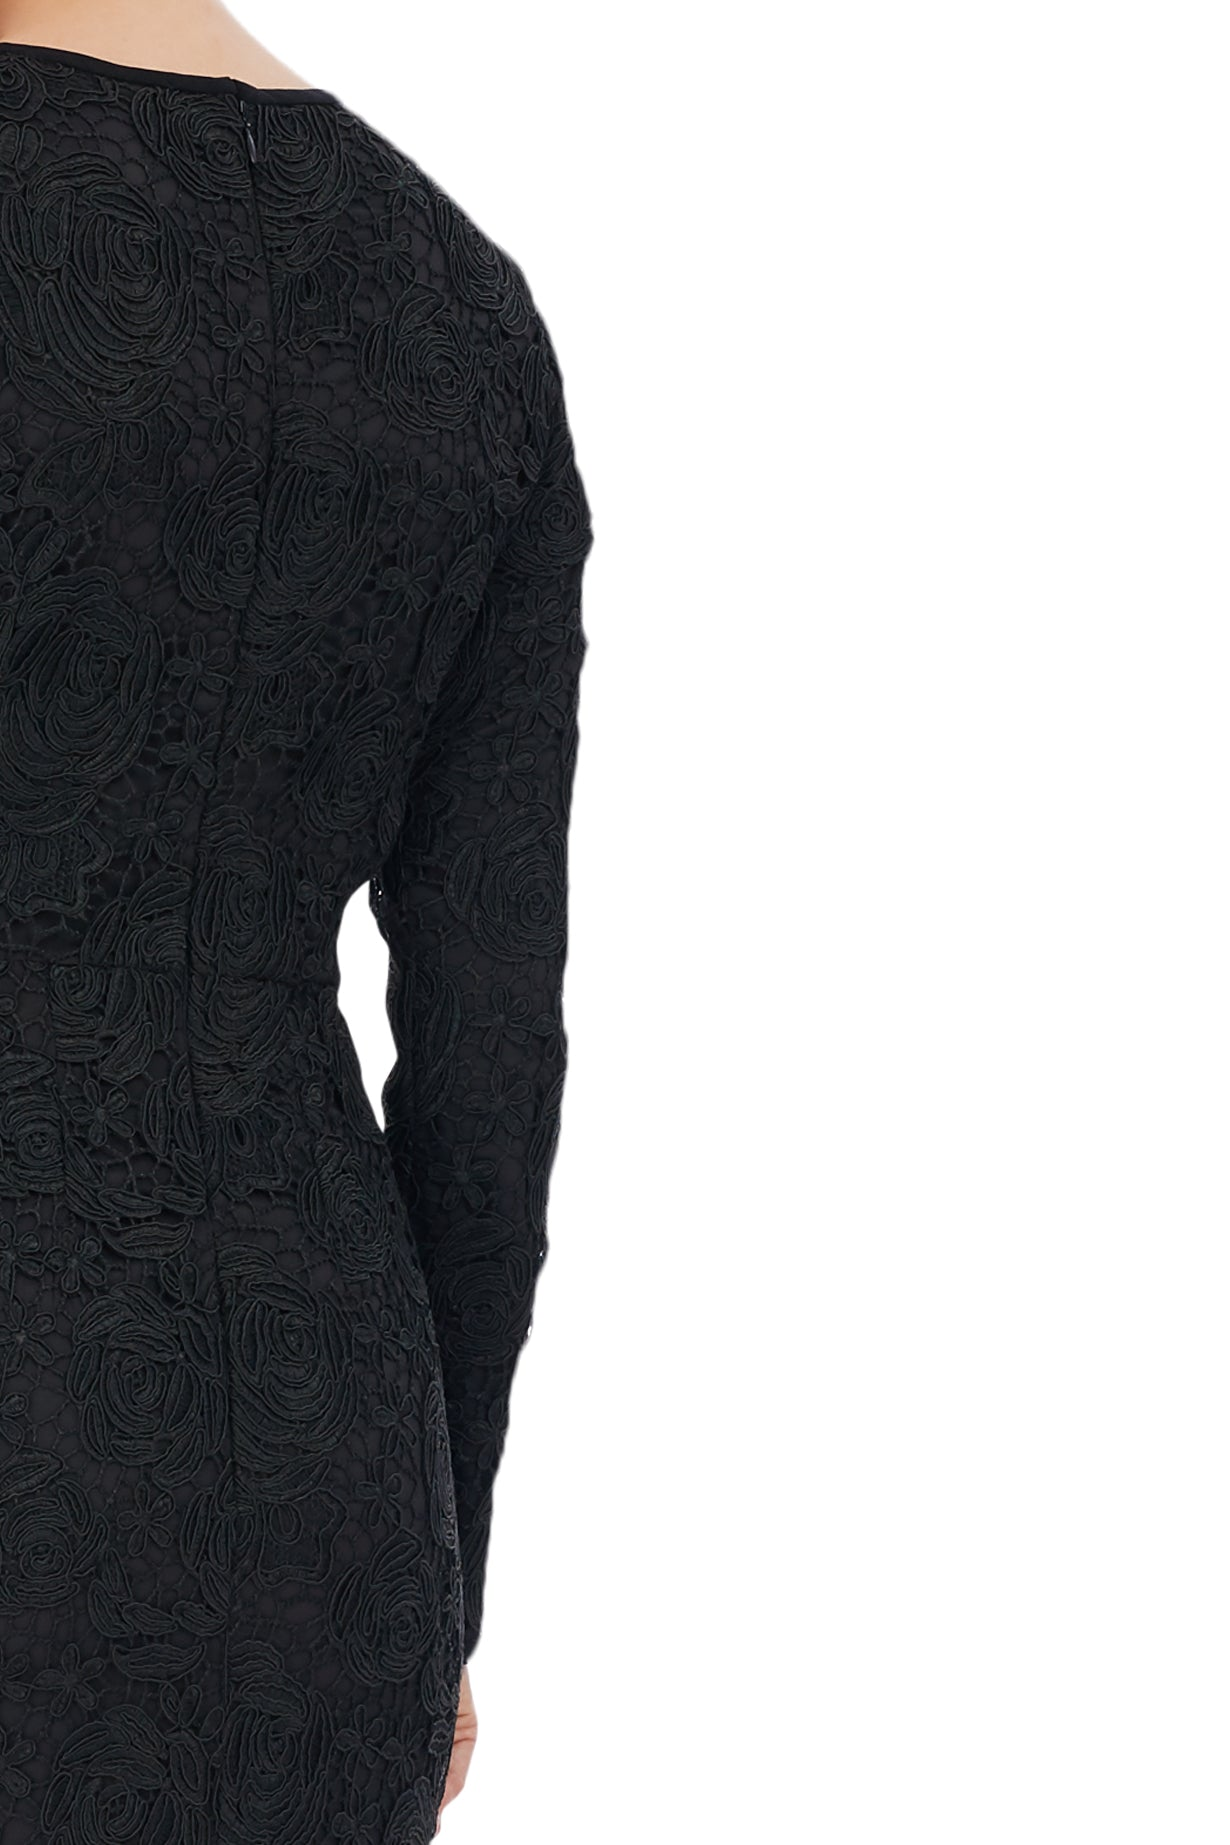 Carolina Lace Dress | Robe Carolina Dentelle